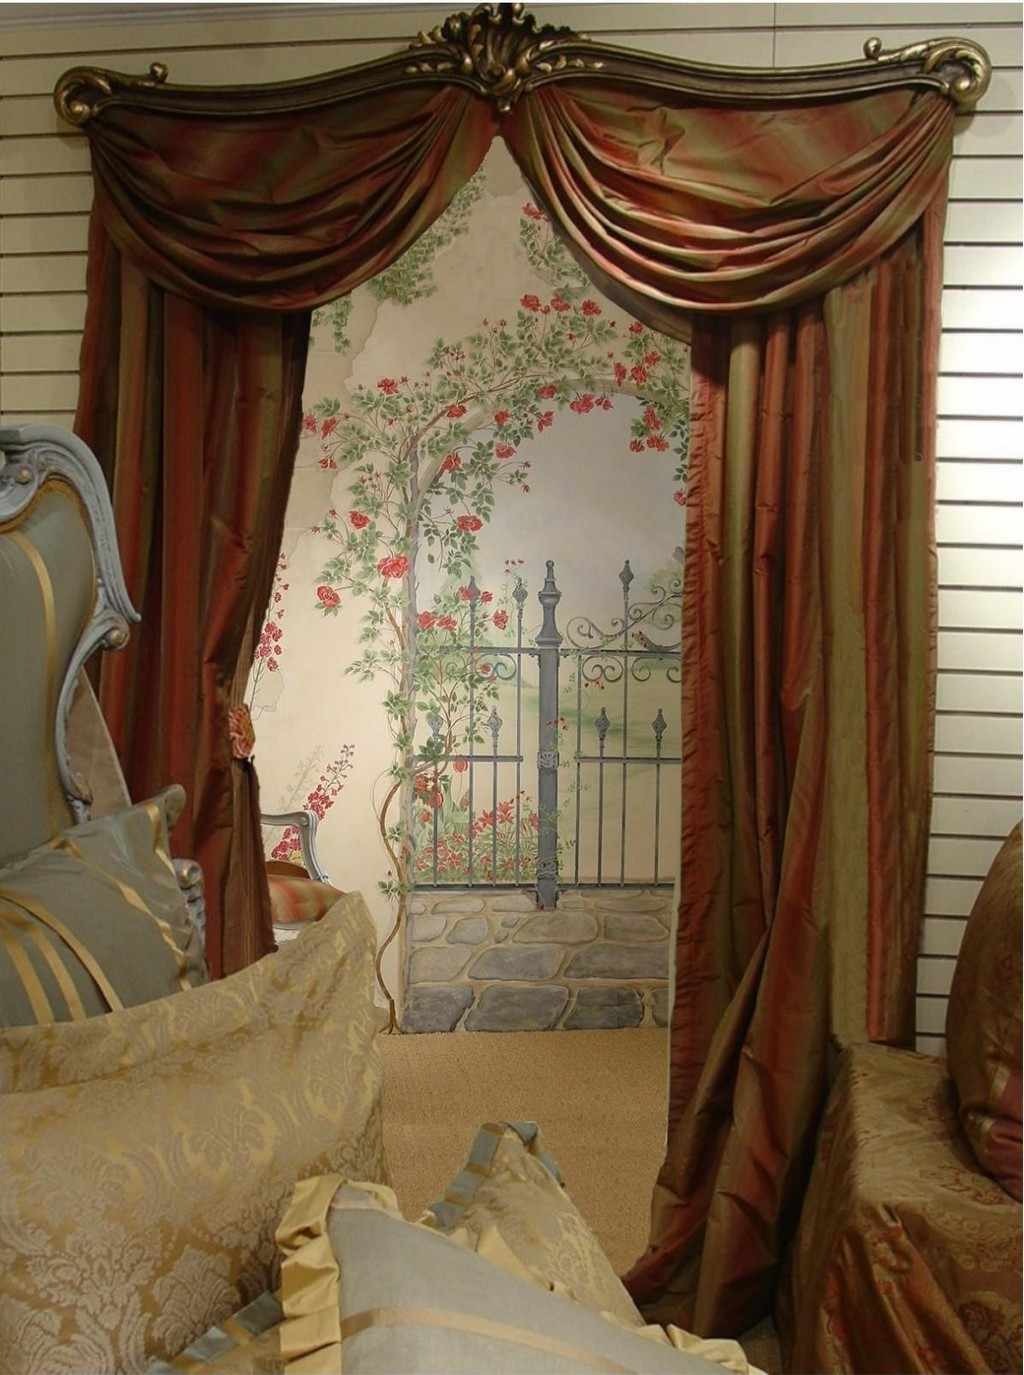 pottery barn silk drapes, how to hang drapes, linen drapes, bed drapes